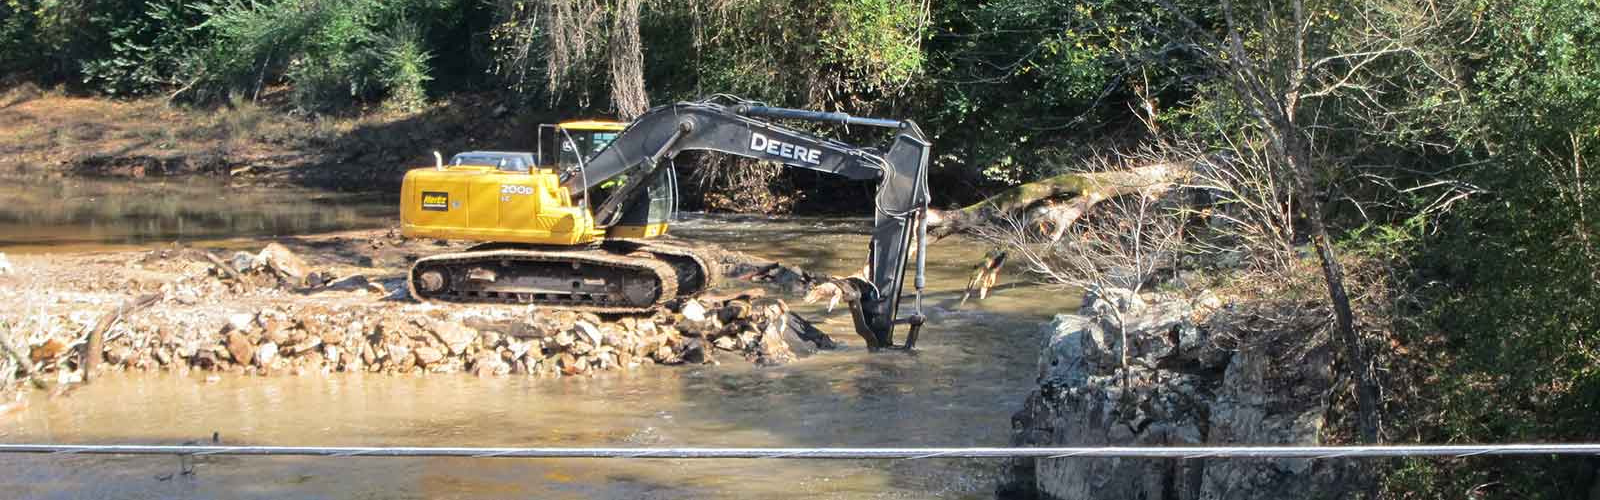 Smitherman's Dam Removal, Little River, NC 11/2013 | Gerrit Jobsis